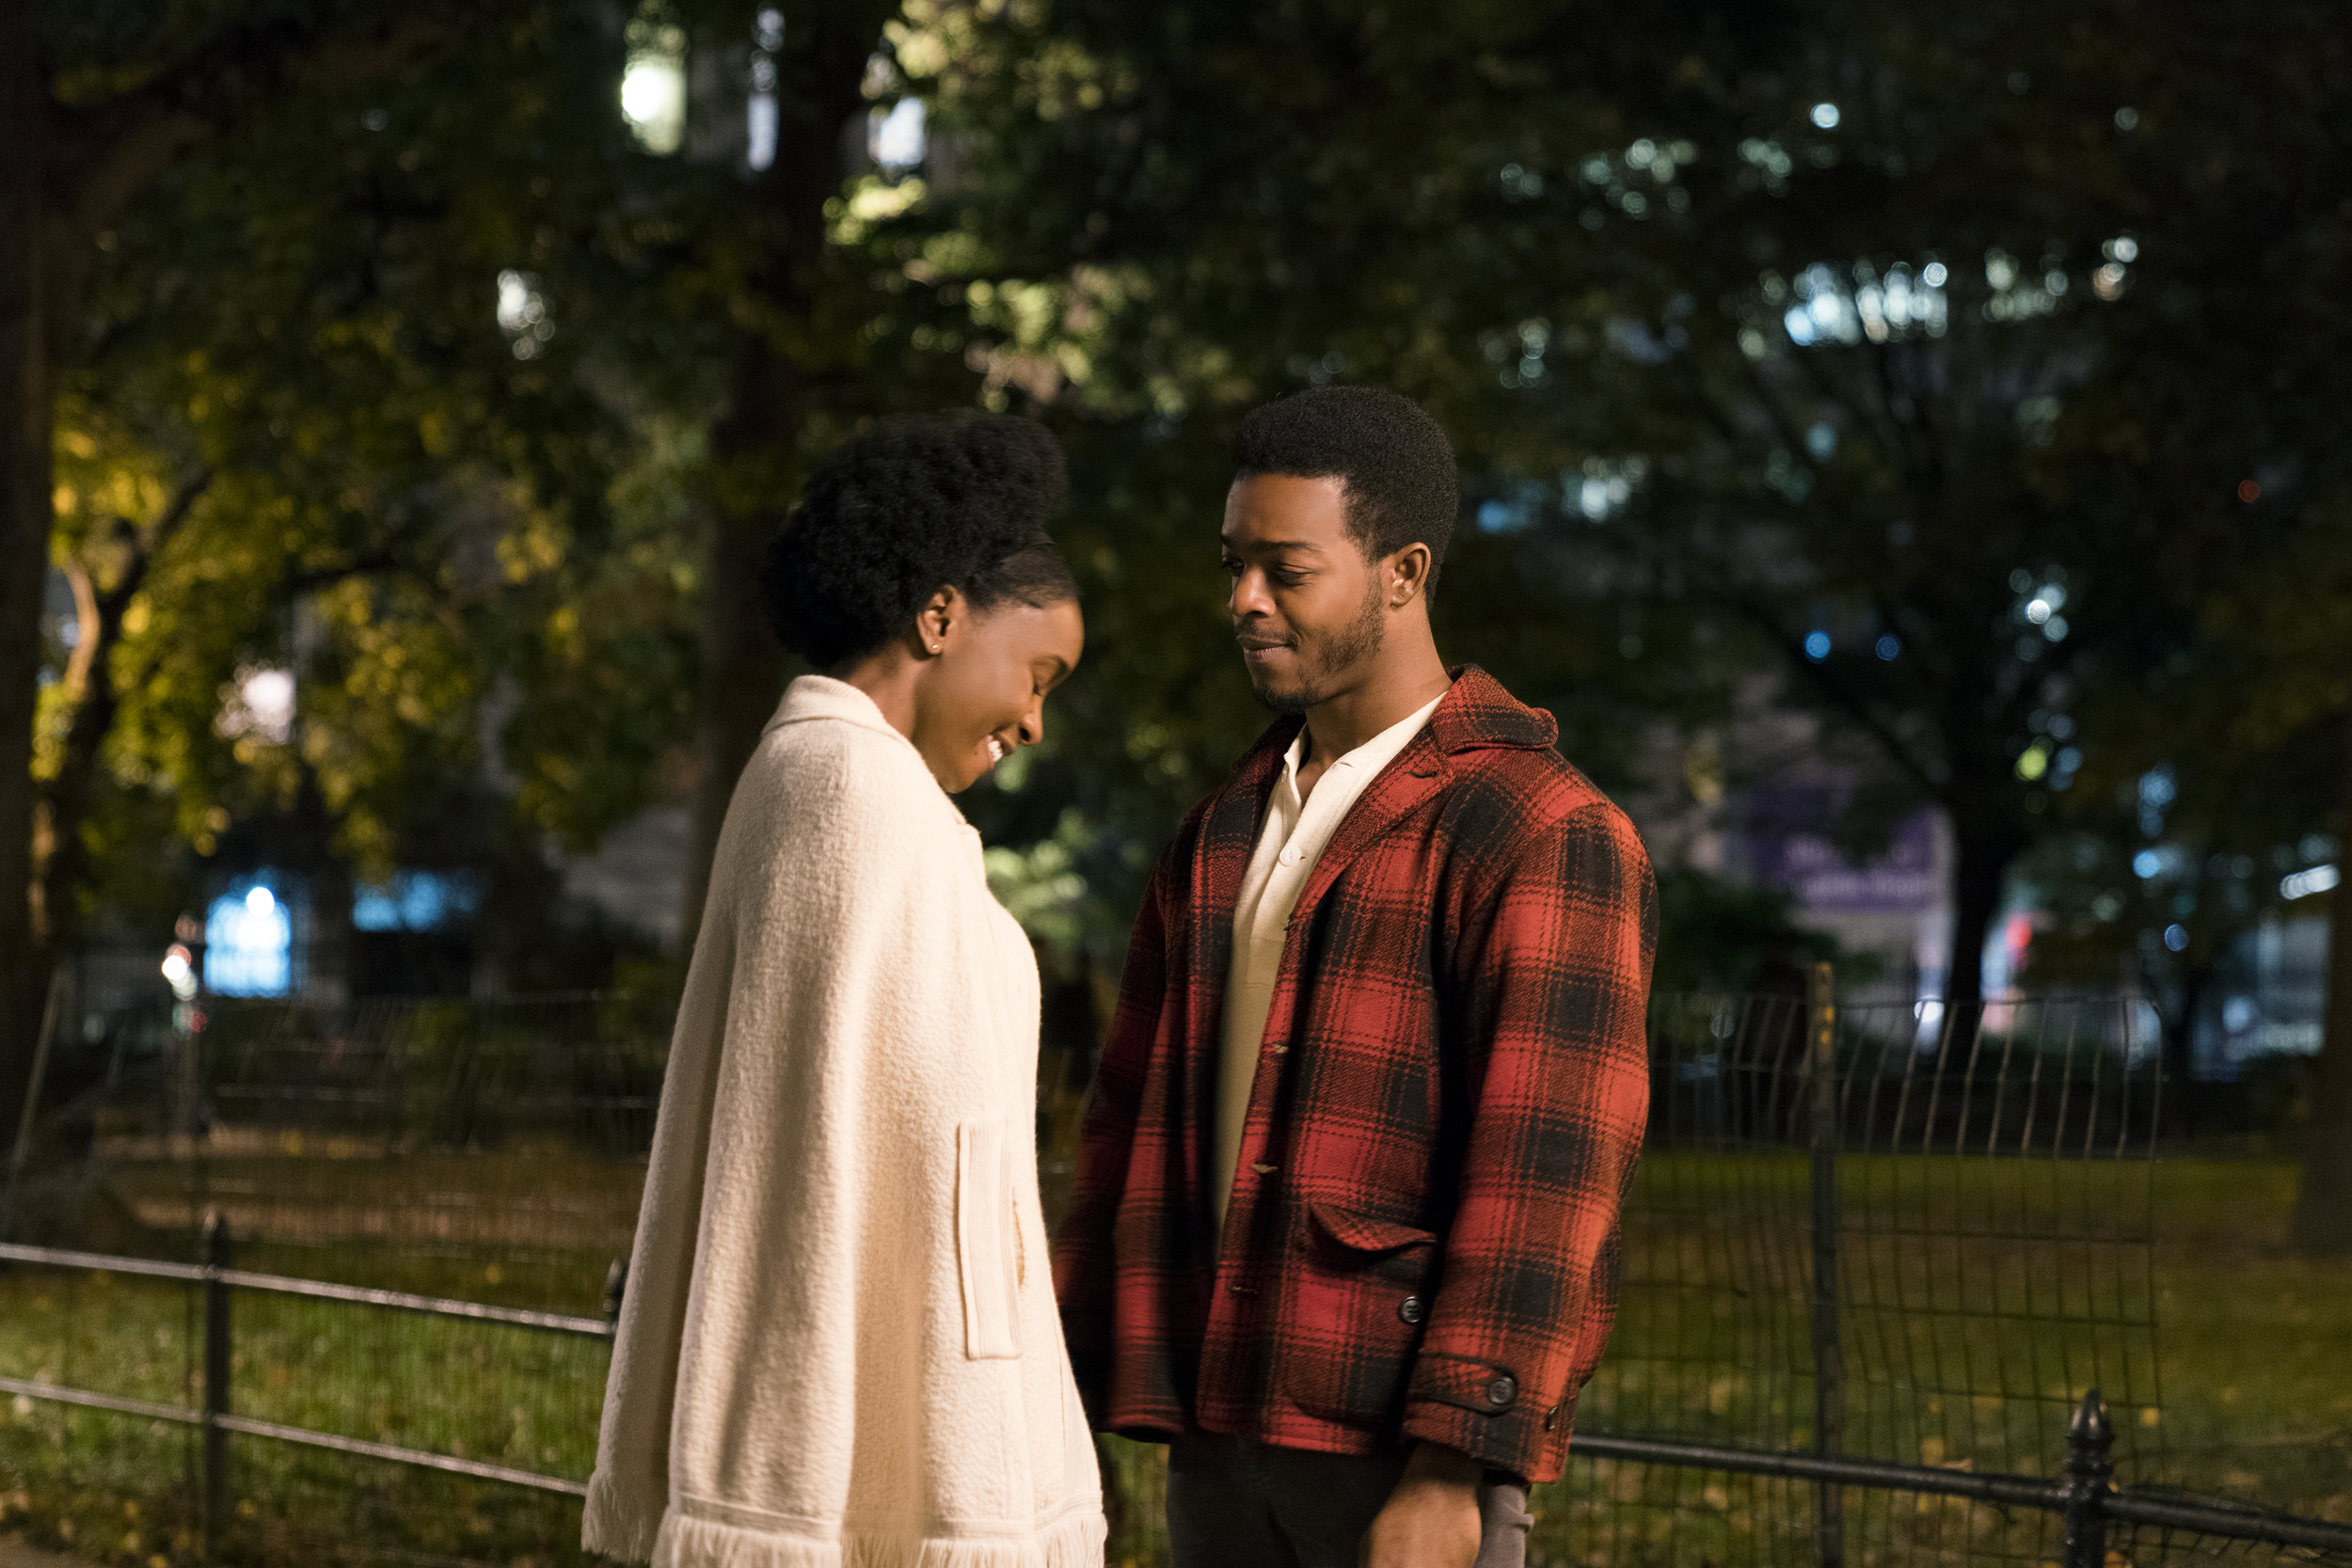 """Tish (Kiki Layne, left) and Fonny (Stephan James) are young and in love in 1970s Harlem, in writer-director Barry Jenkins' """"If Beale Street Could Talk,"""" an adaptation of James Baldwin's novel. (Photo by Tatum Mangus, courtesy Annapurna Pictures)"""